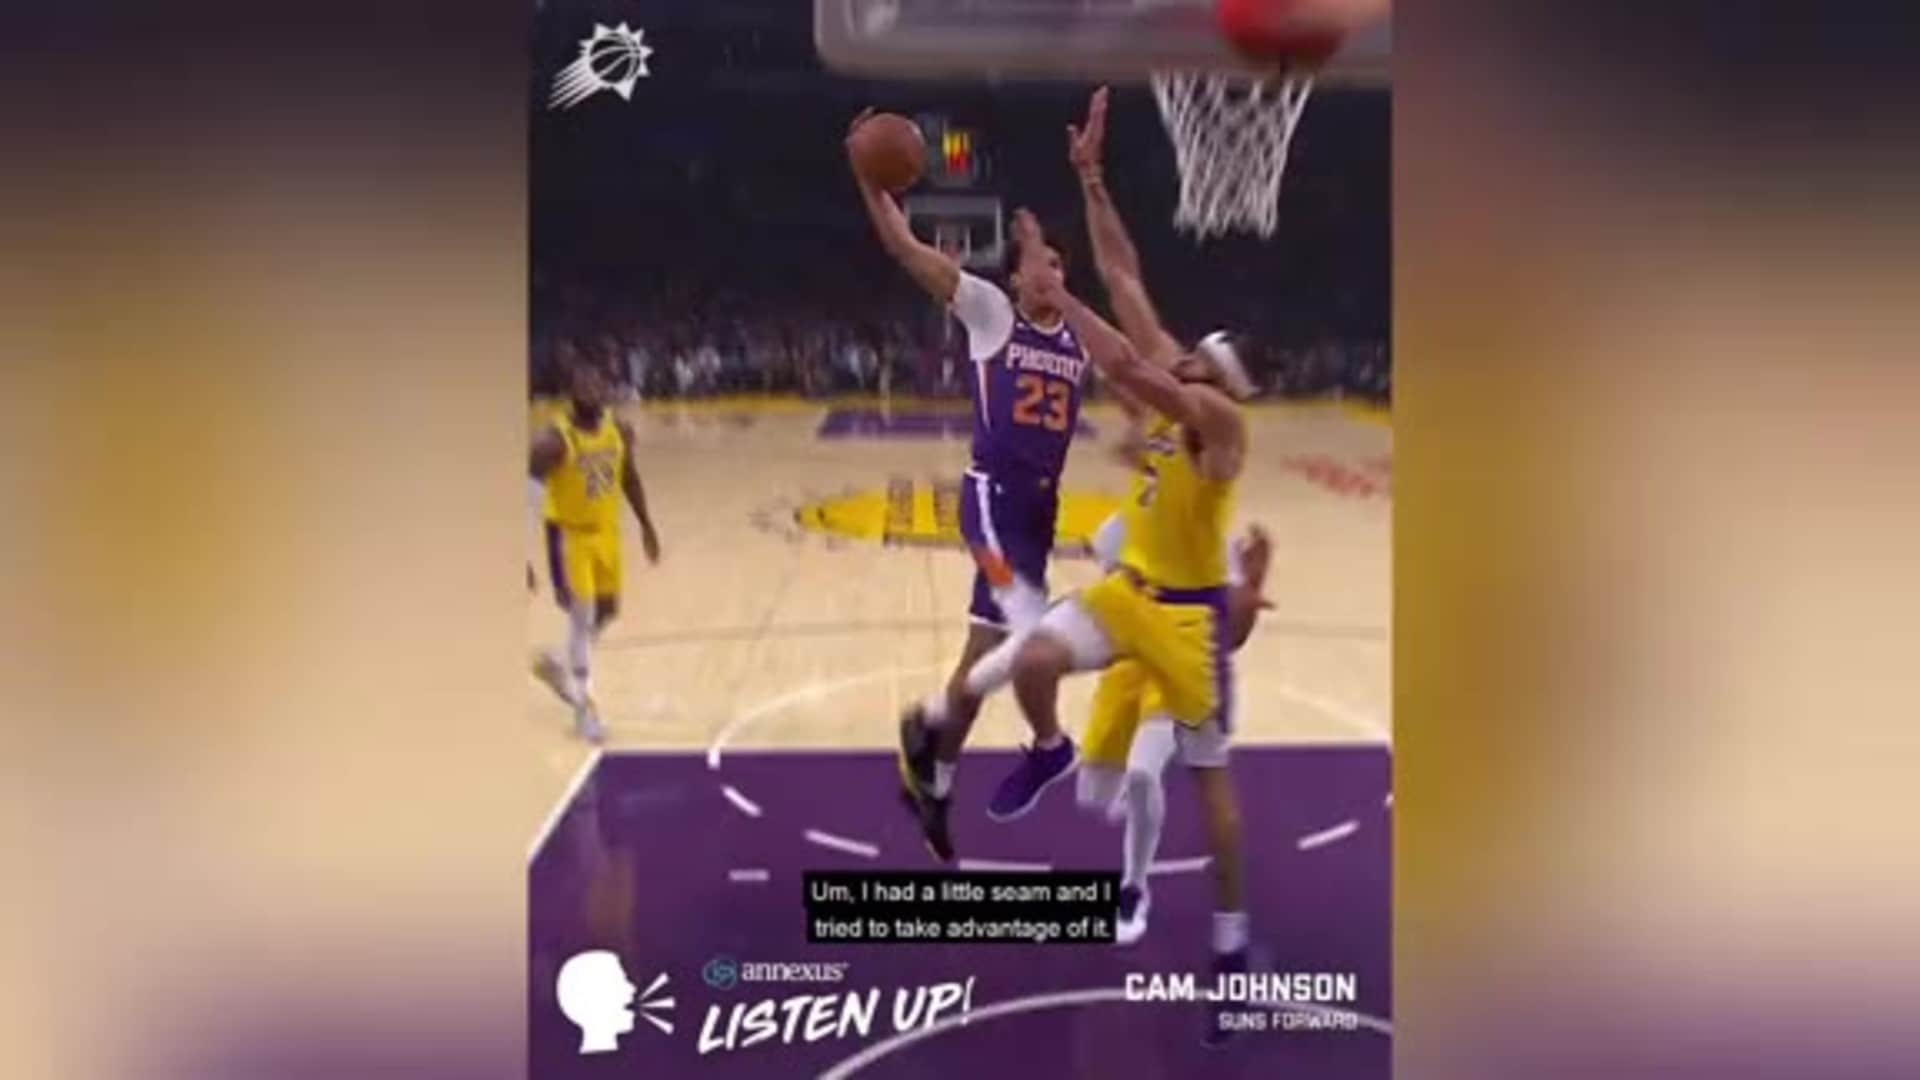 Annexus Listen Up: Johnson Dunk on McGee